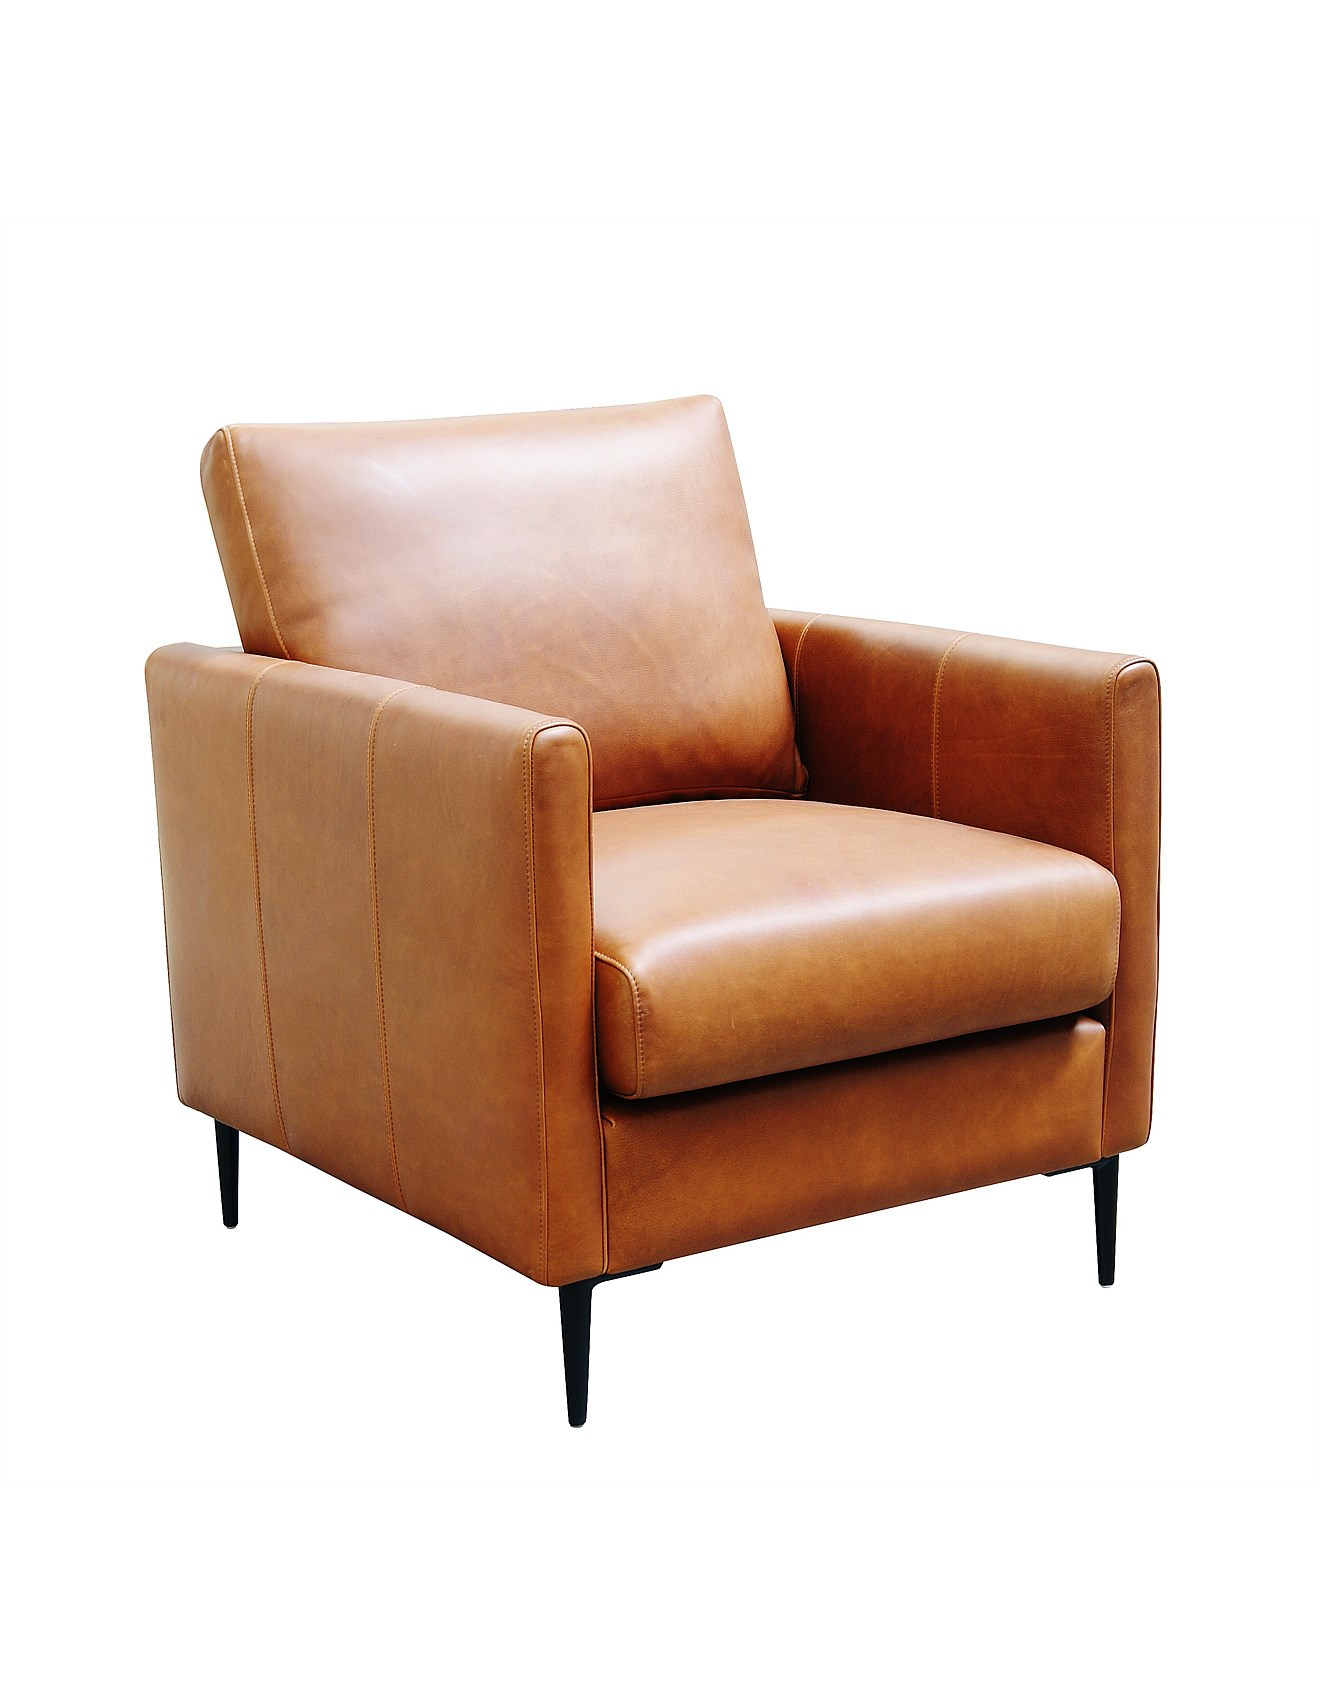 Leather Recliner Chairs David Jones Home Furnishings Decor Rugs Blinds And More David